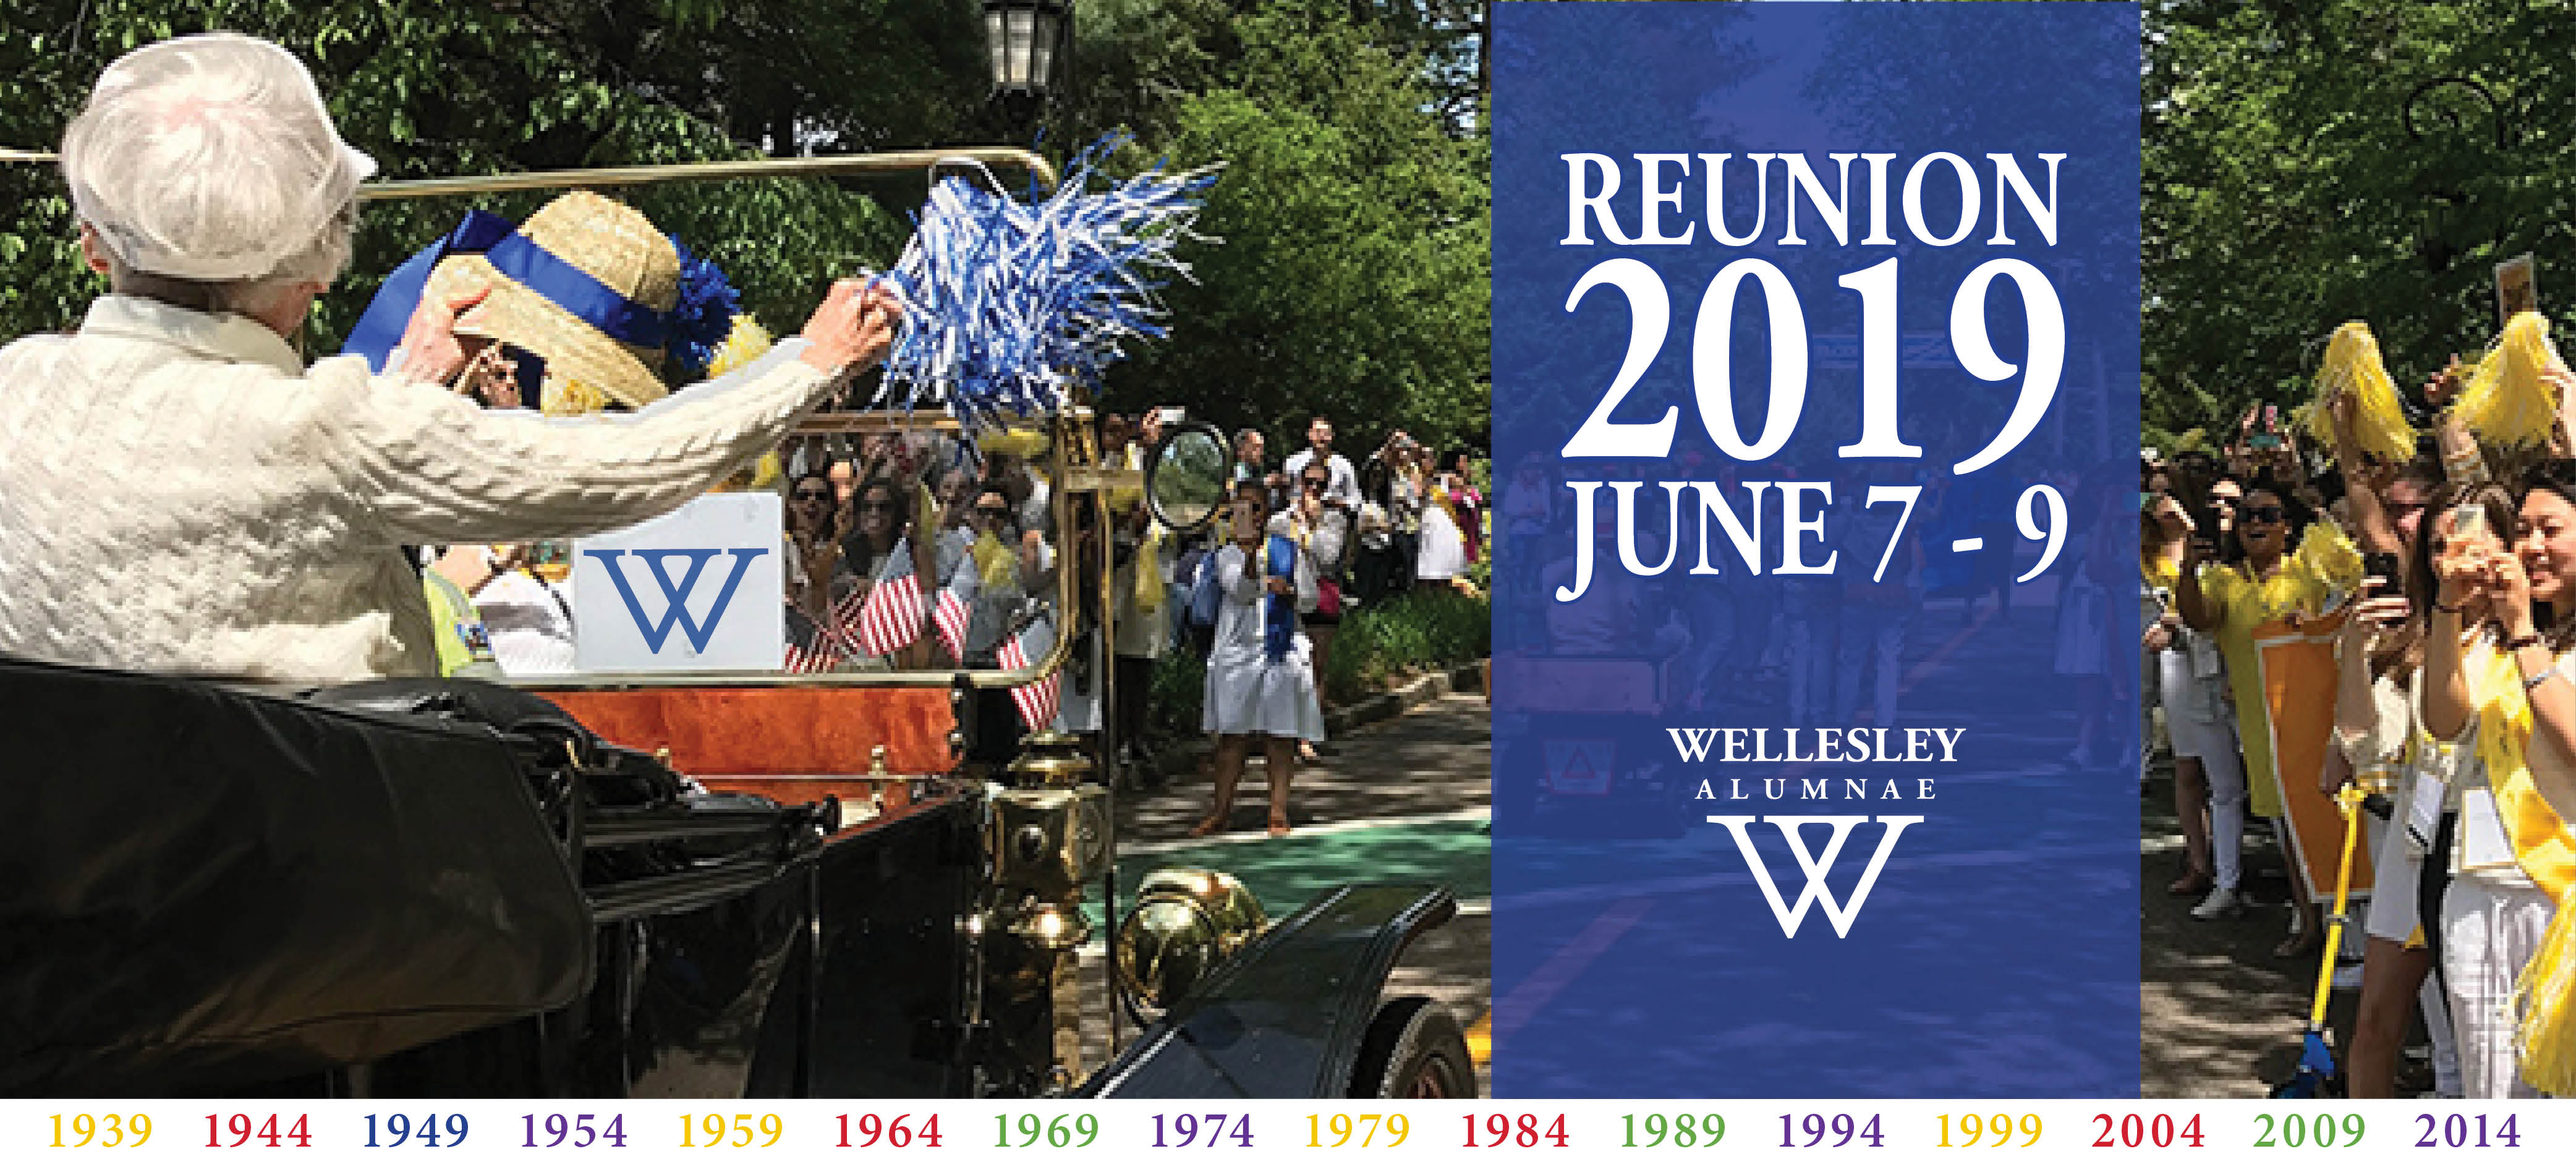 Wellesley College Reunion